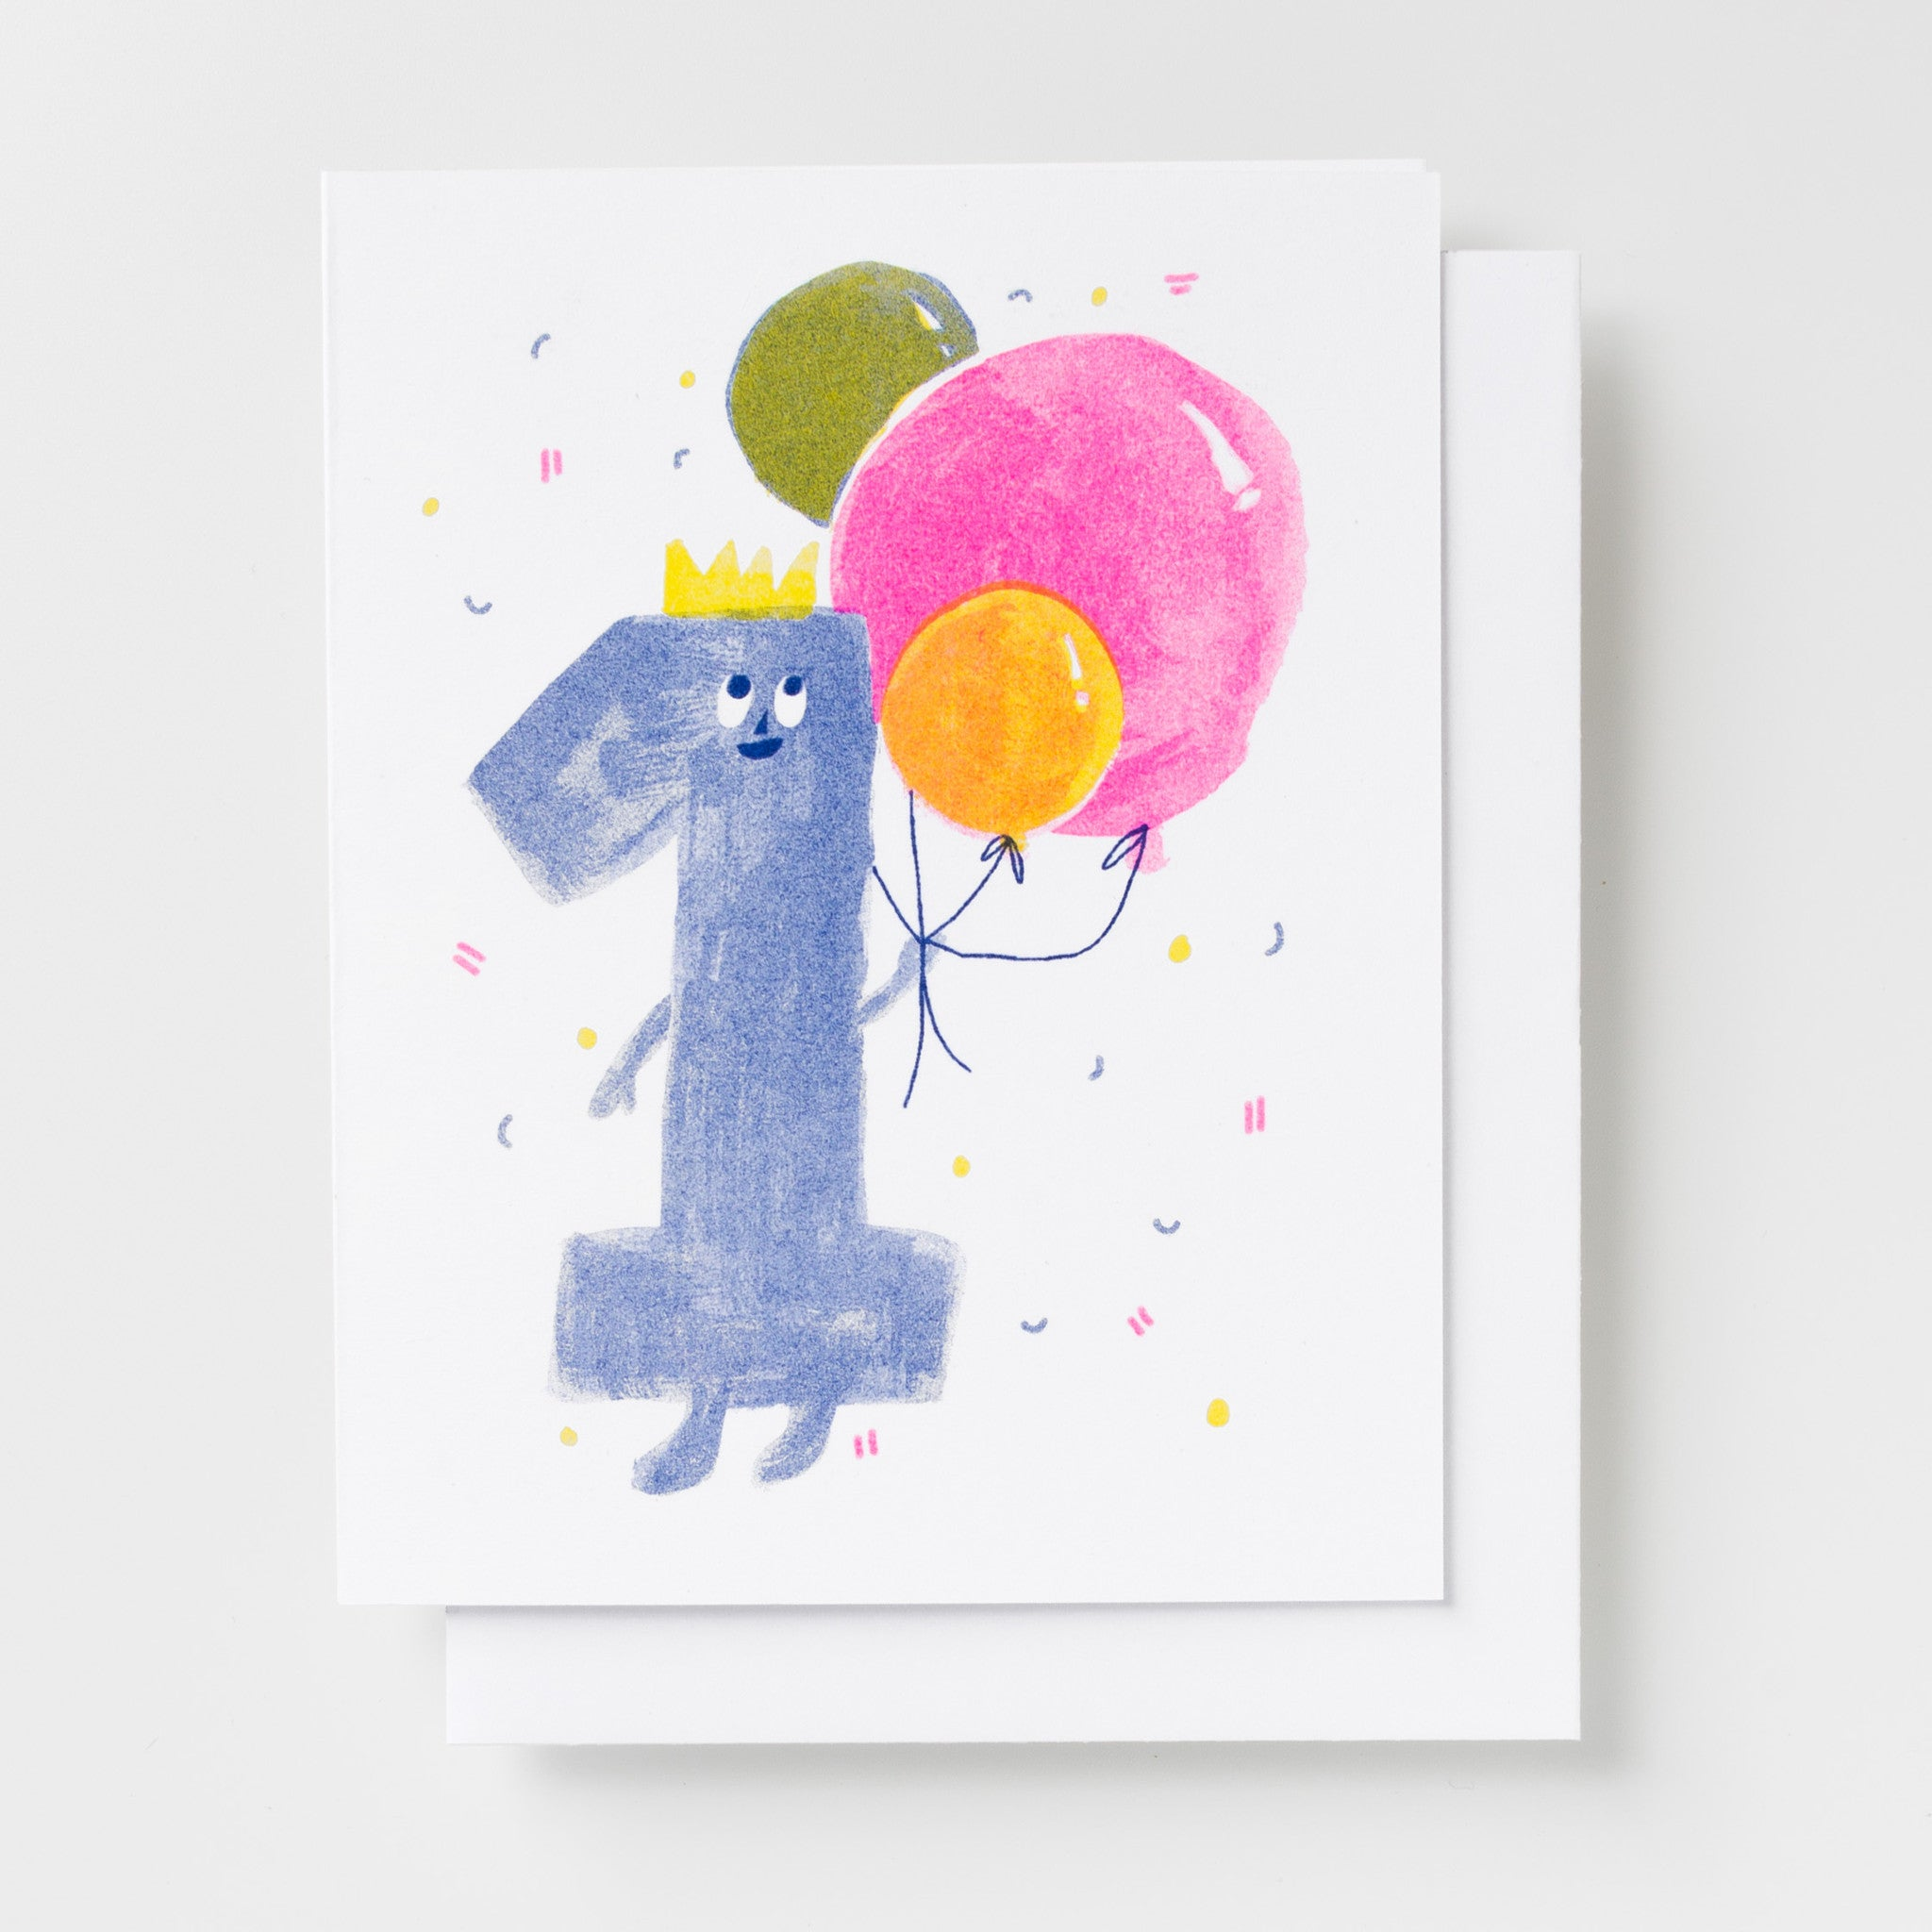 1 Year Old Birthday Card with Colorful Balloons